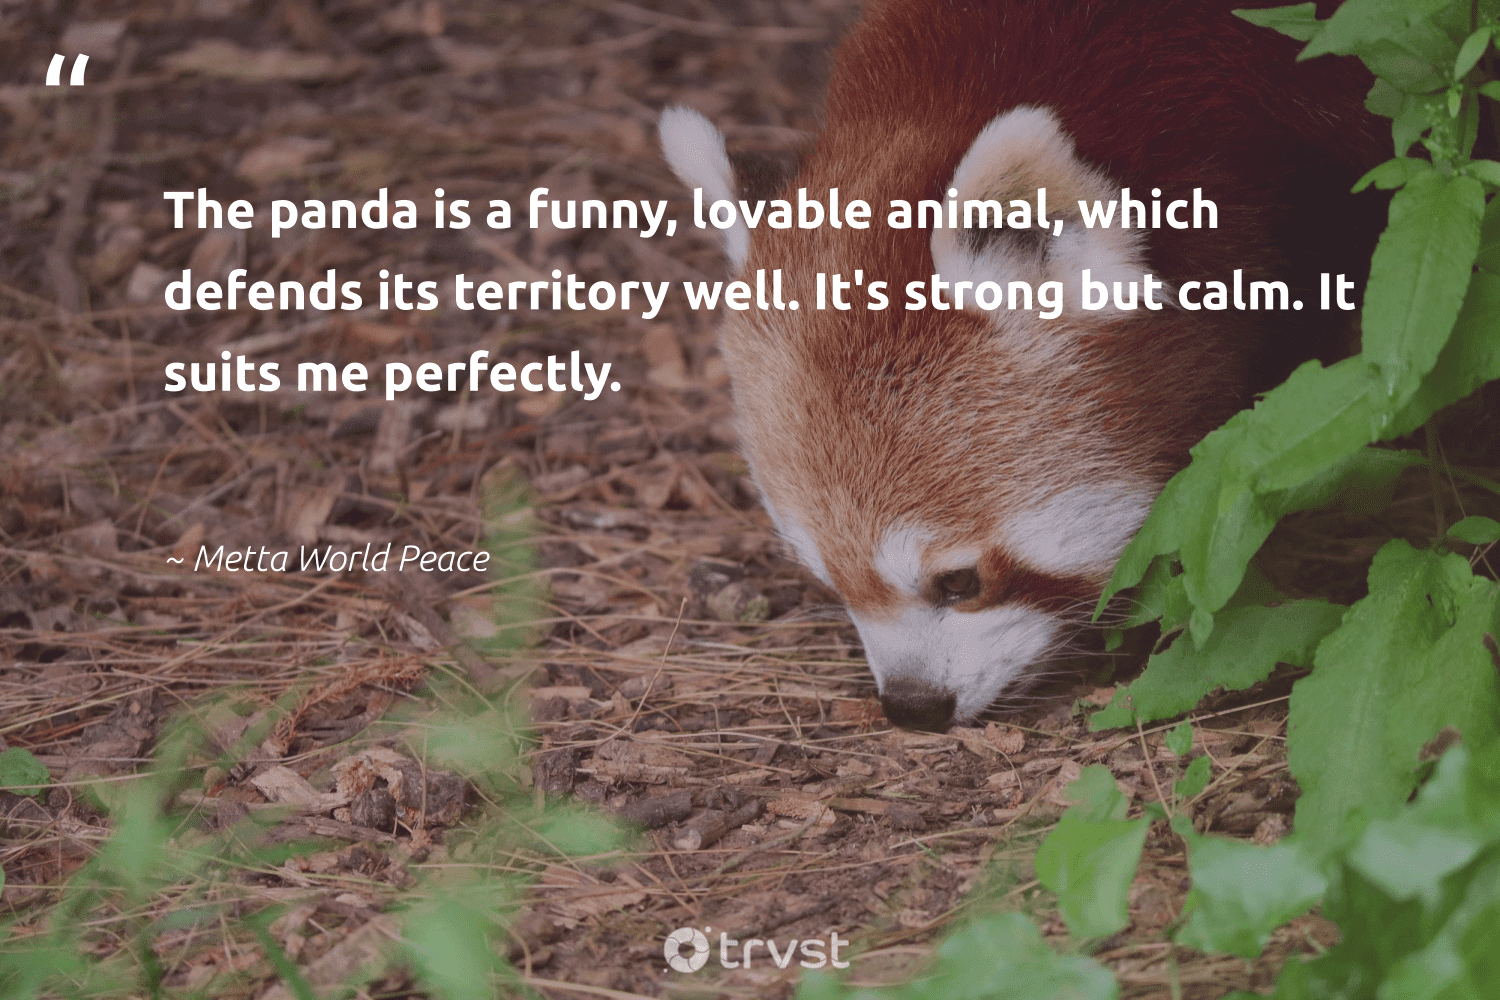 """""""The panda is a funny, lovable animal, which defends its territory well. It's strong but calm. It suits me perfectly.""""  - Metta World Peace #trvst #quotes #animal #wildlife #amazingworld #geology #planetearthfirst #animals #protectnature #natural #socialimpact #animallovers"""